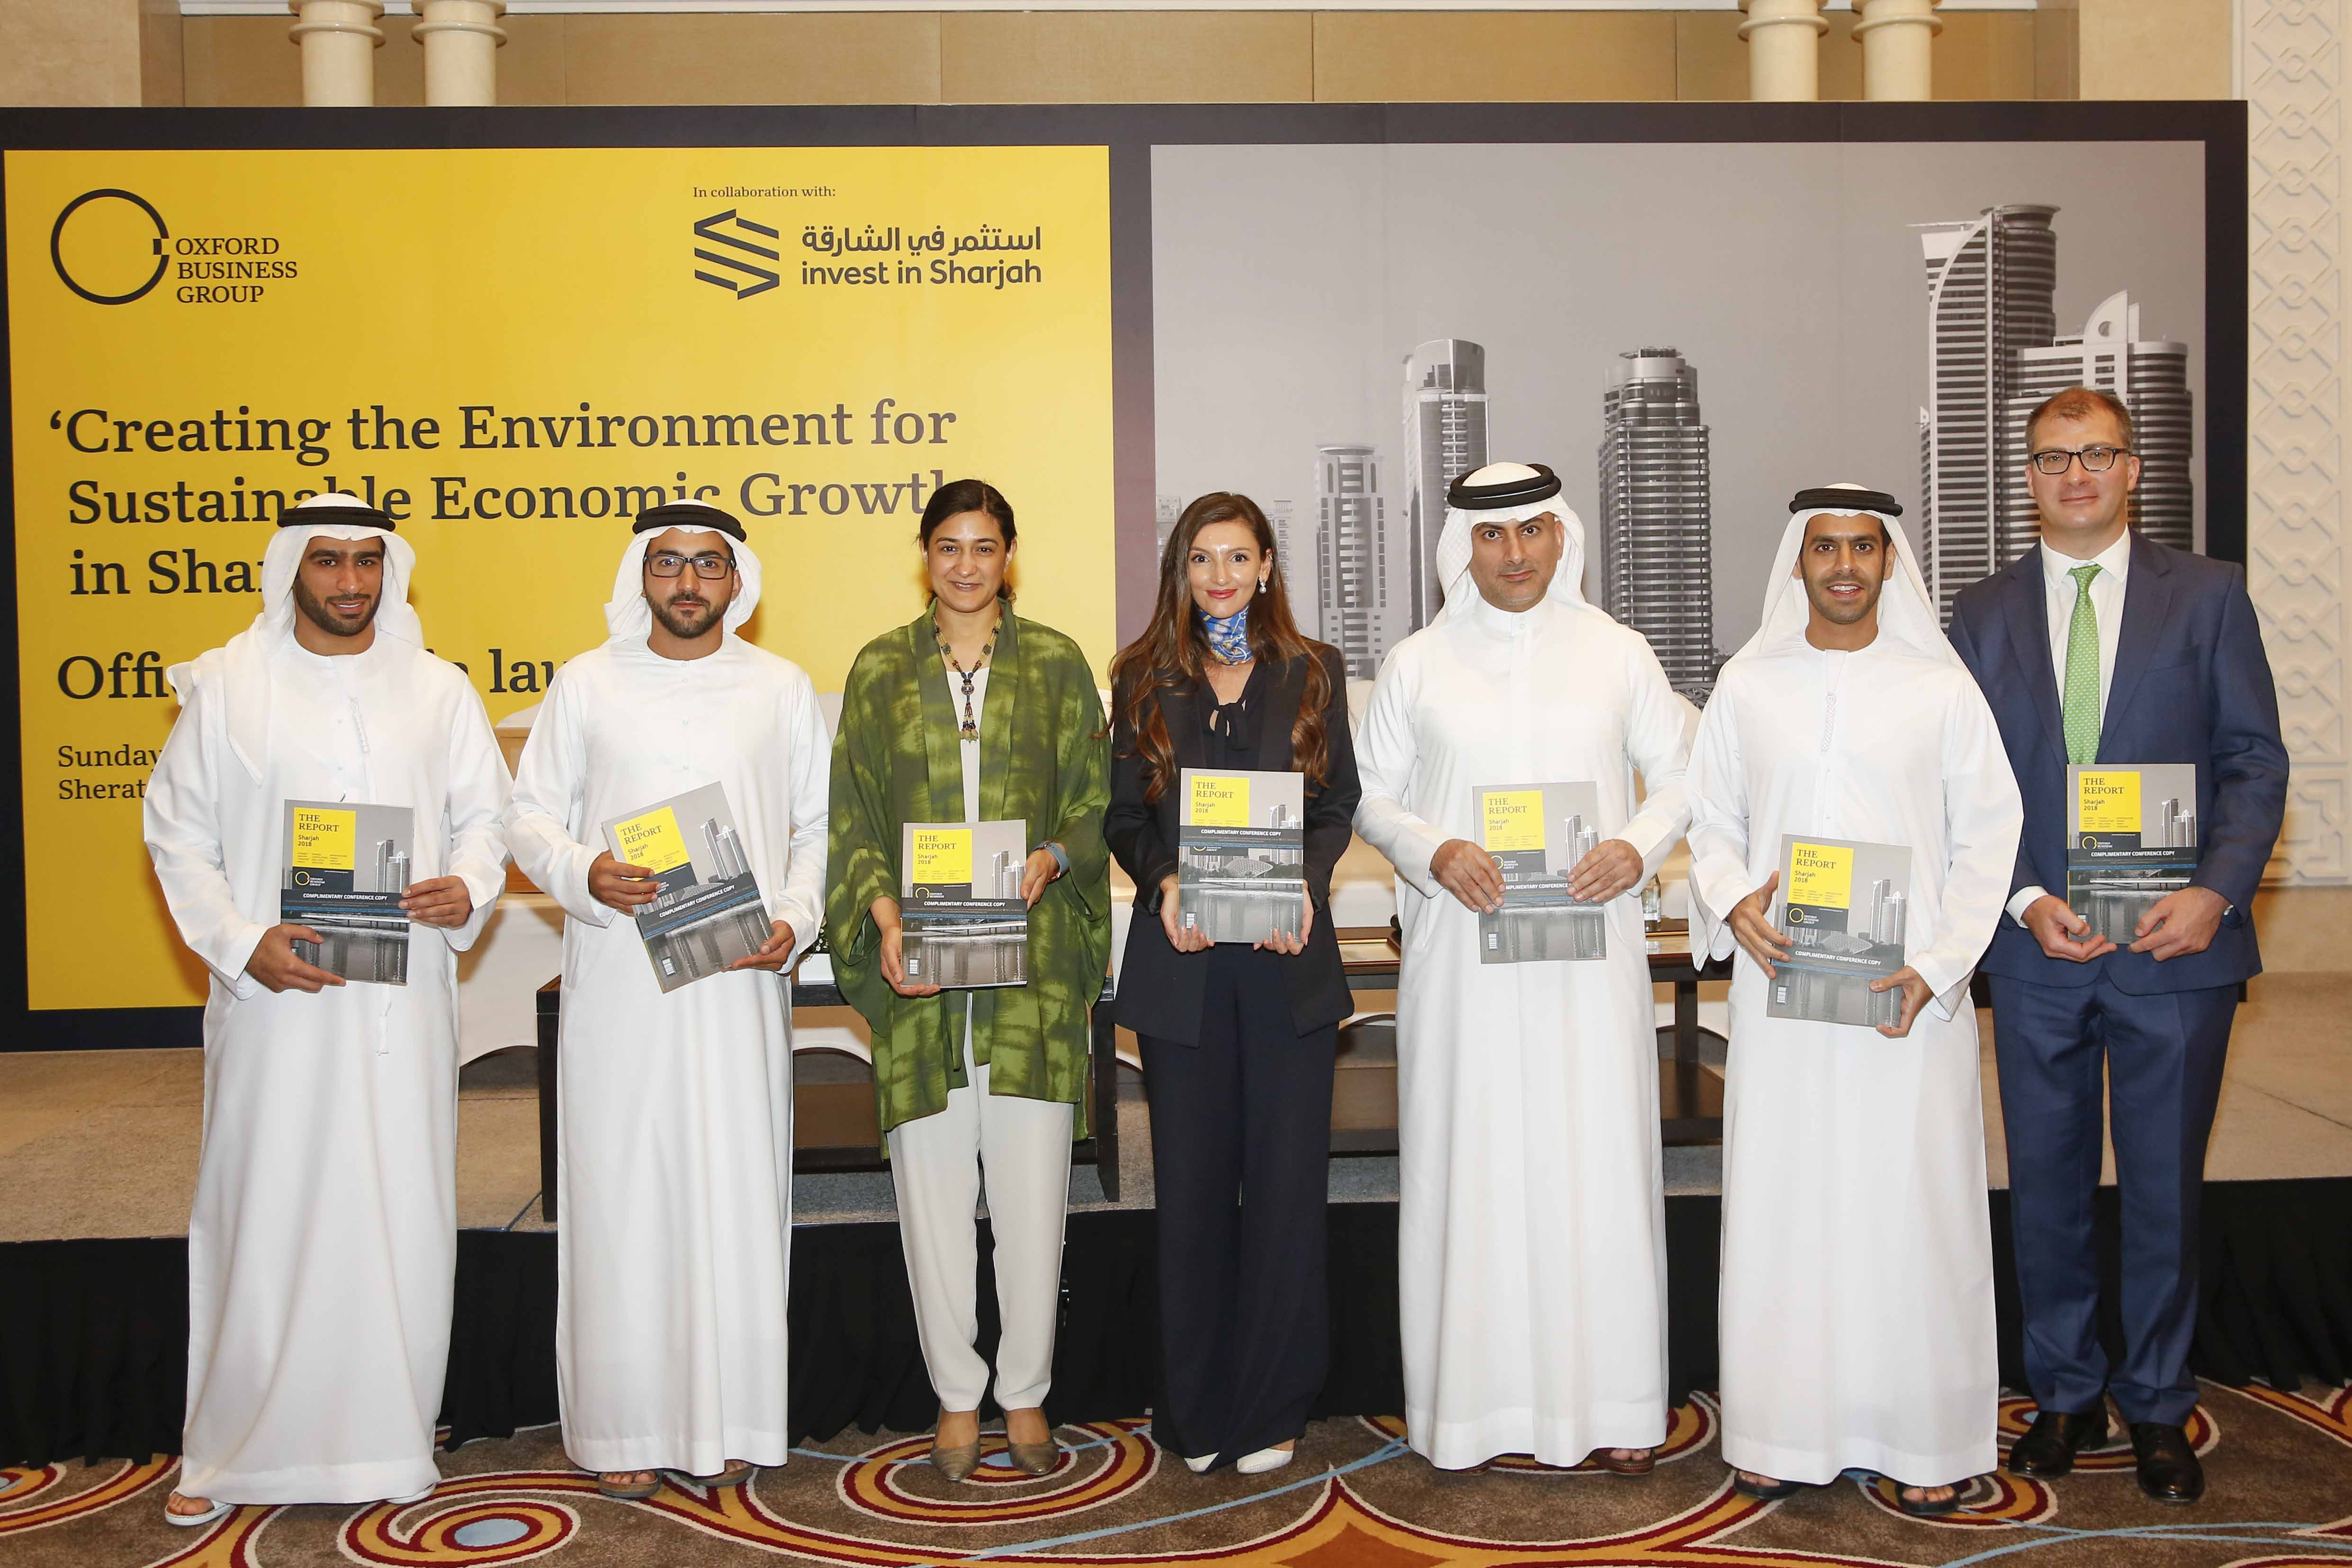 oxford business group issues report on sharjah's economic diversification5